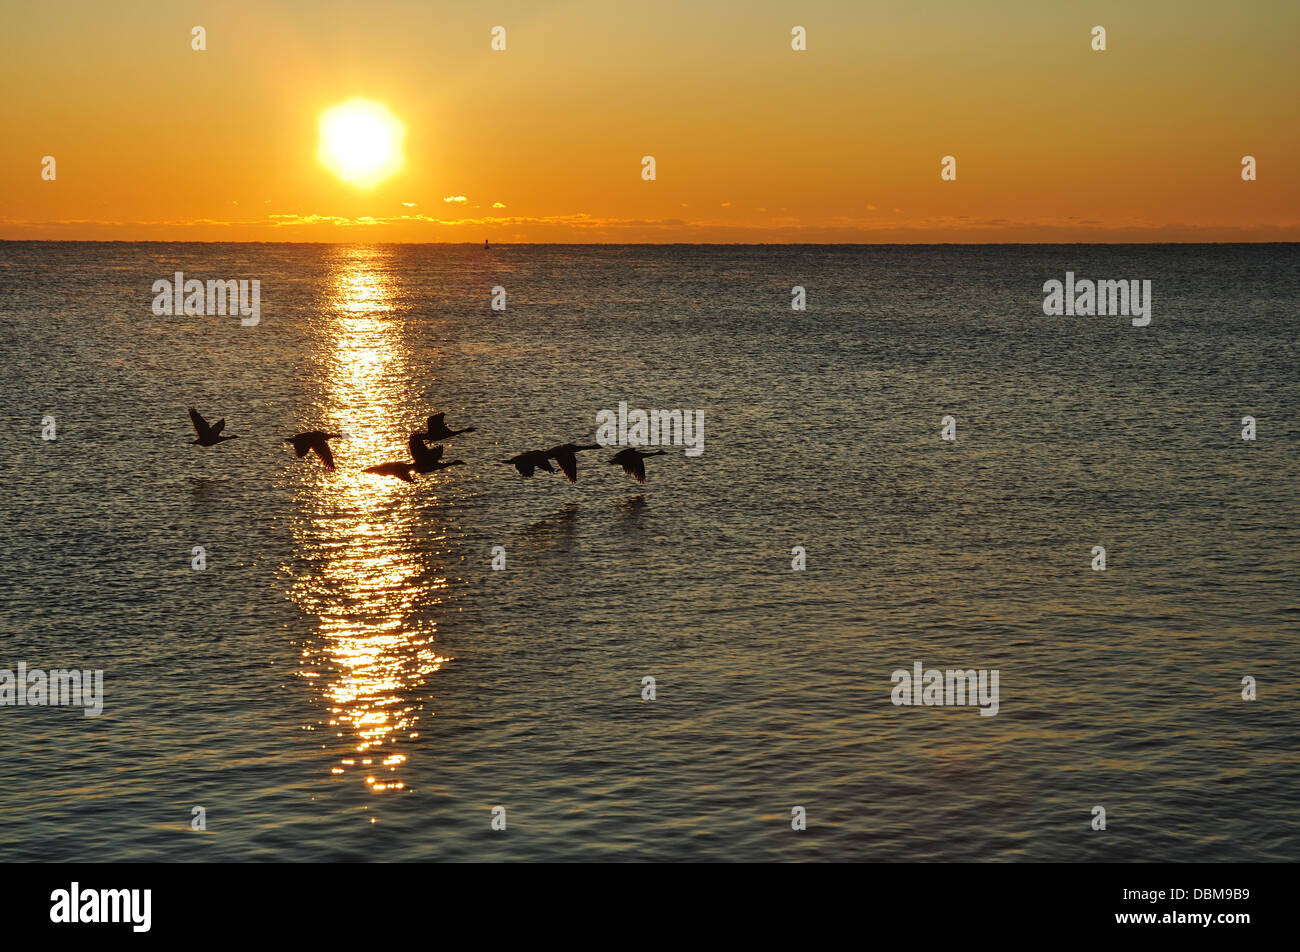 Silhouettes of a flock of Canada Geese migrating at sunrise - Stock Image